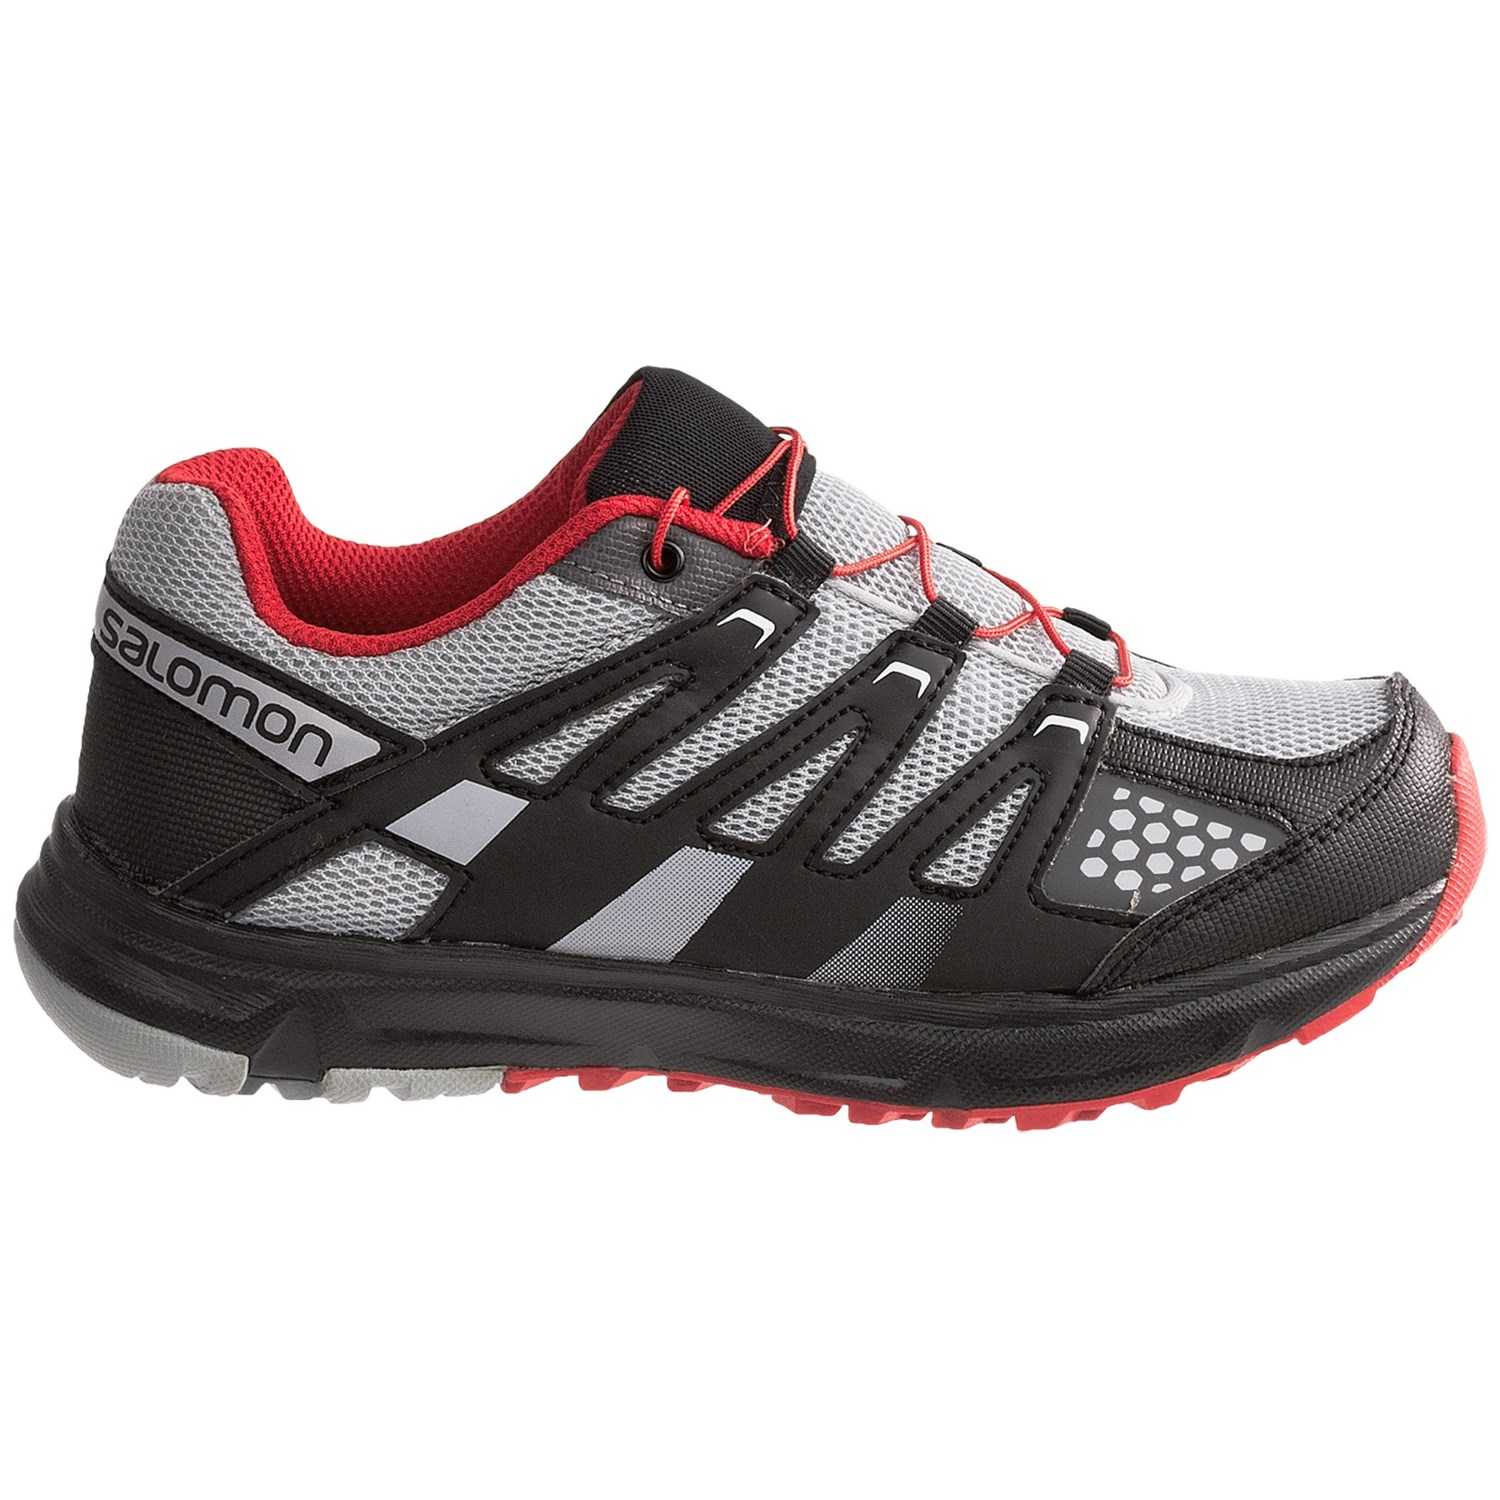 Salomon XR Mission Trail Shoes (For Kids and Youth) - Save 33%